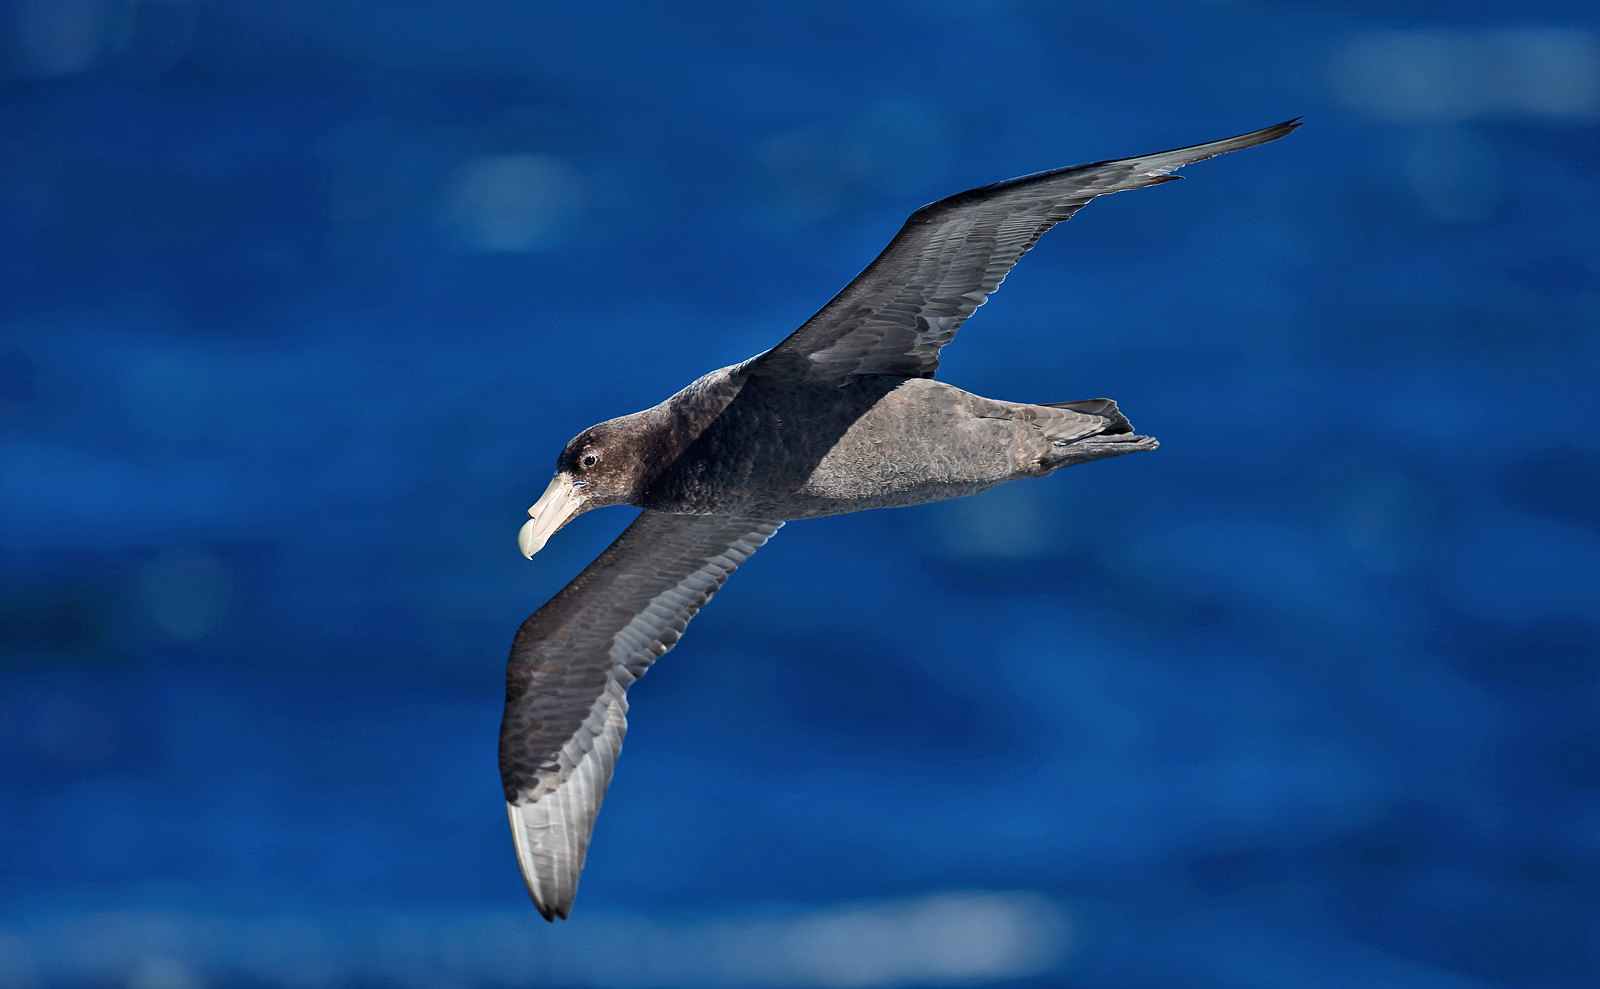 Southern Giant Petrel - immature dark morph